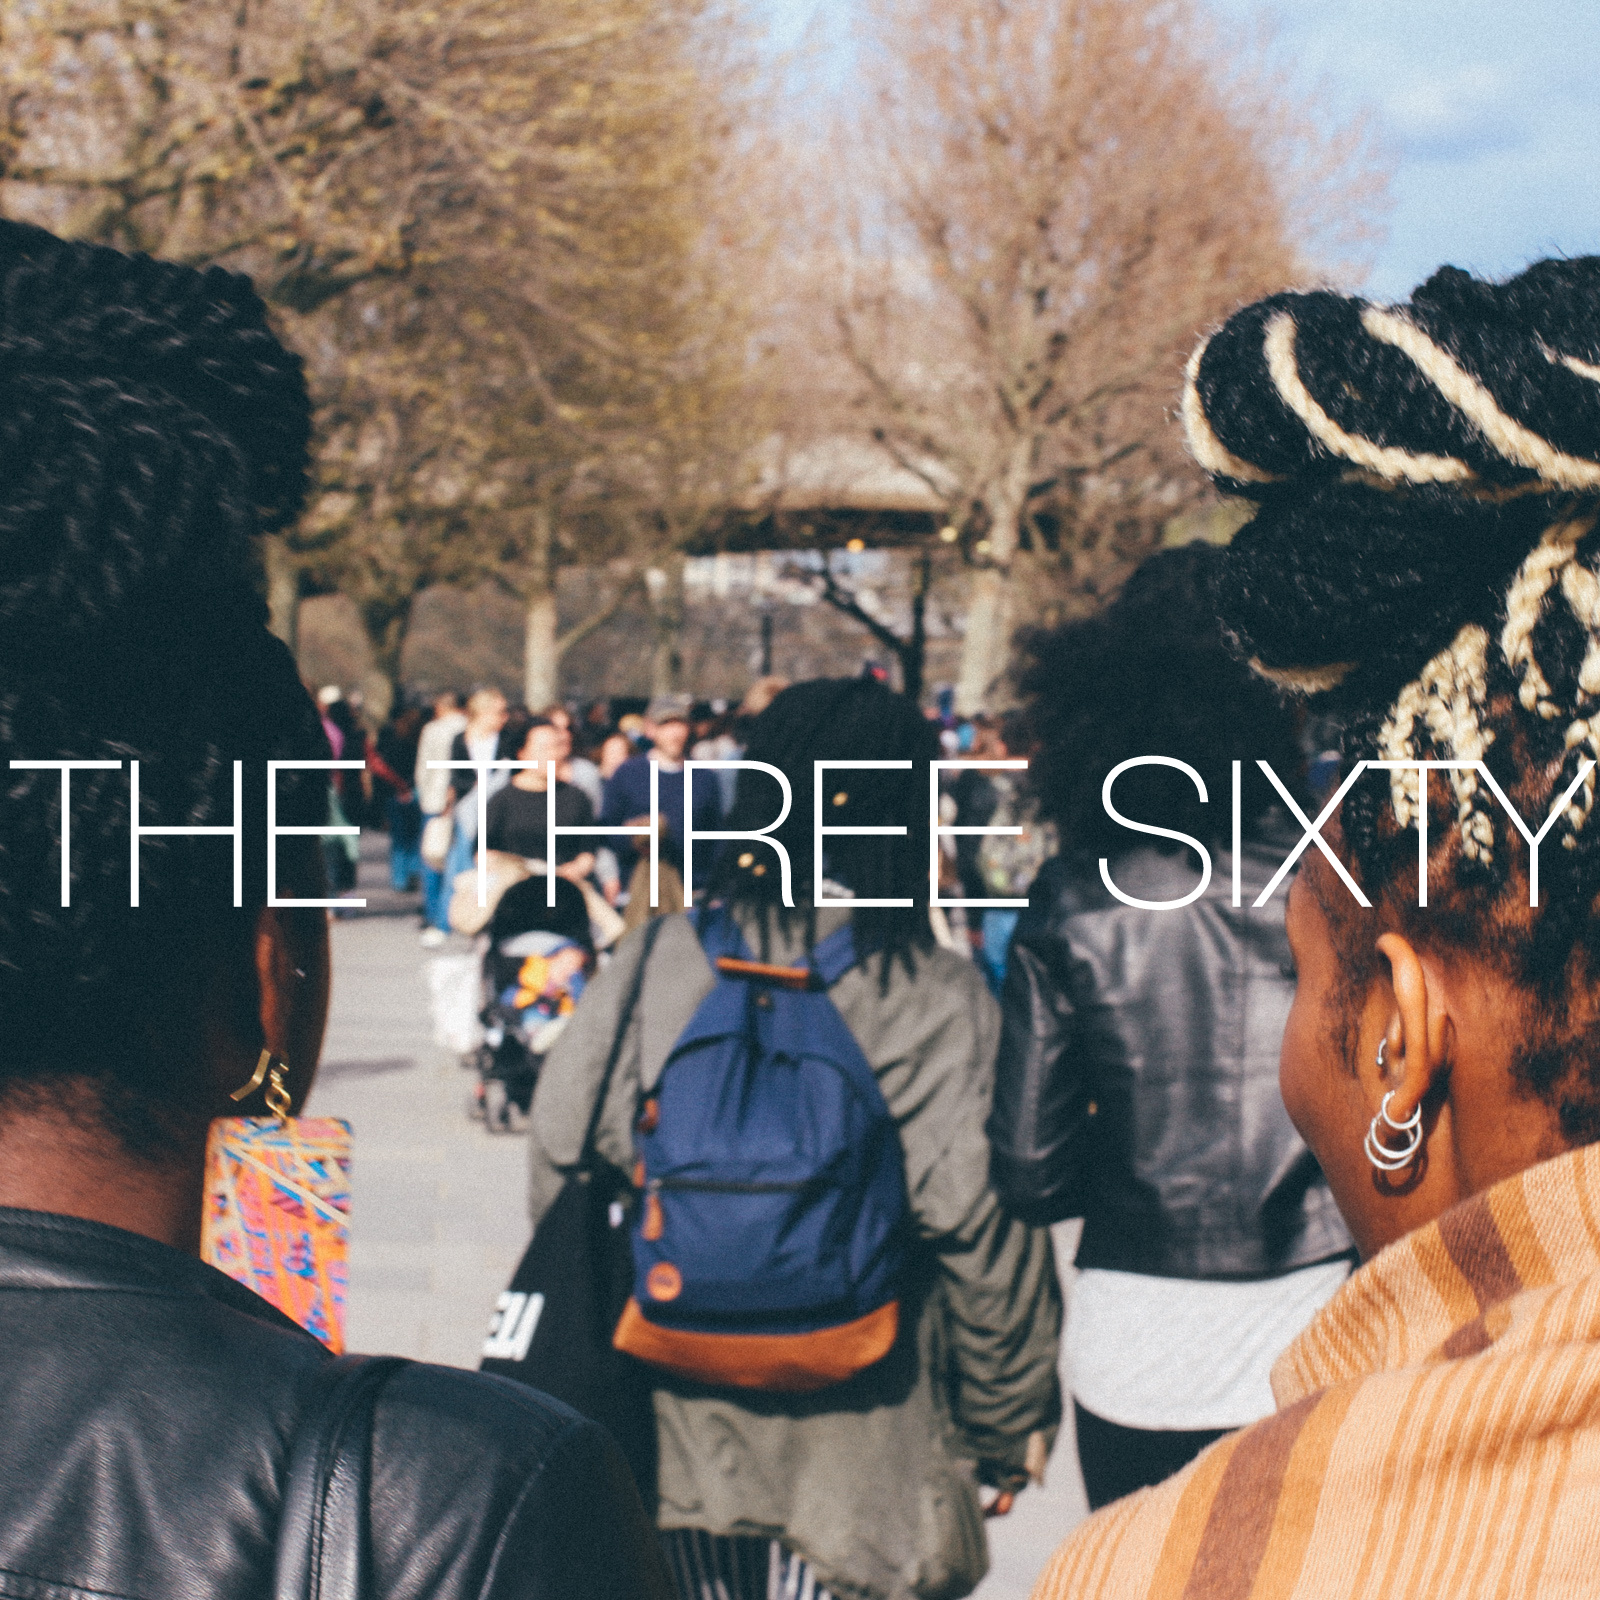 The Three Sixty